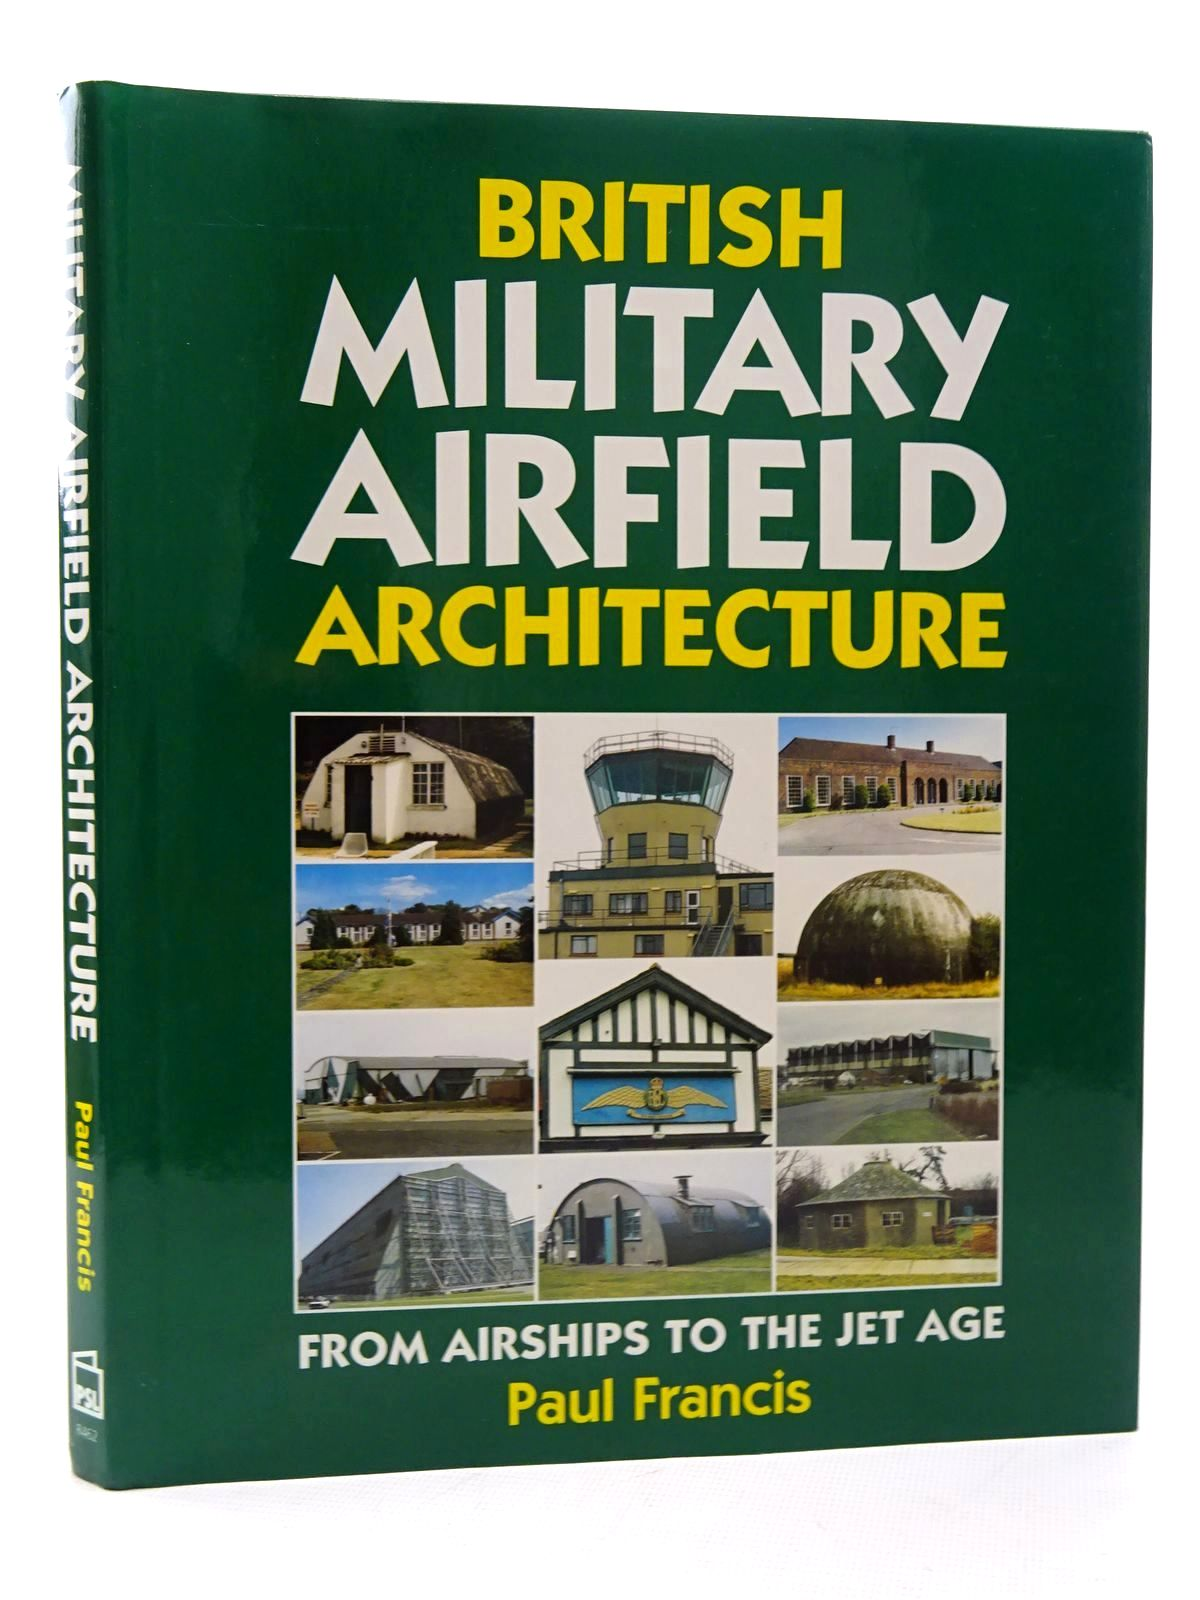 Photo of BRITISH MILITARY AIRFIELD ARCHITECTURE FROM AIRSHIPS TO THE JET AGE written by Francis, Paul published by Patrick Stephens Limited (STOCK CODE: 2125284)  for sale by Stella & Rose's Books